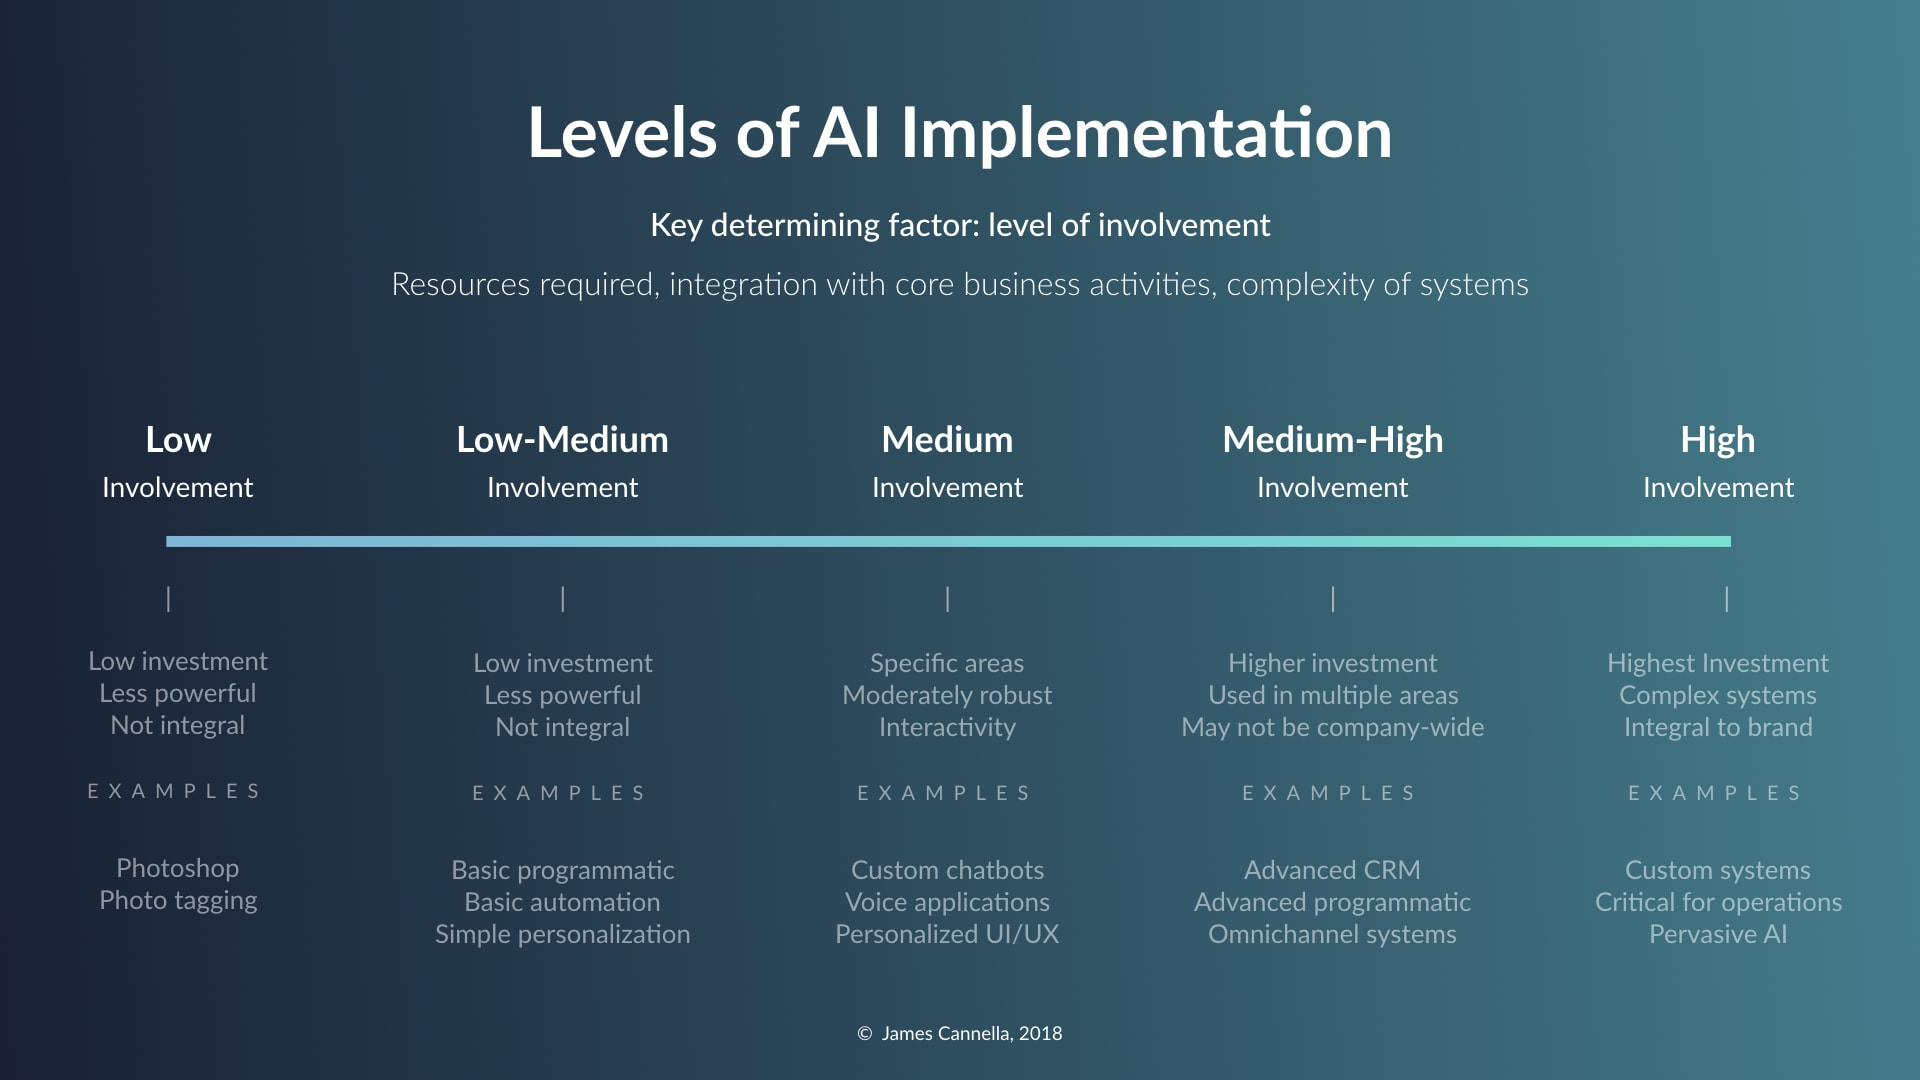 Marketing Implementation of AI - Low to High Involvement Framework James Cannella Honors Thesis